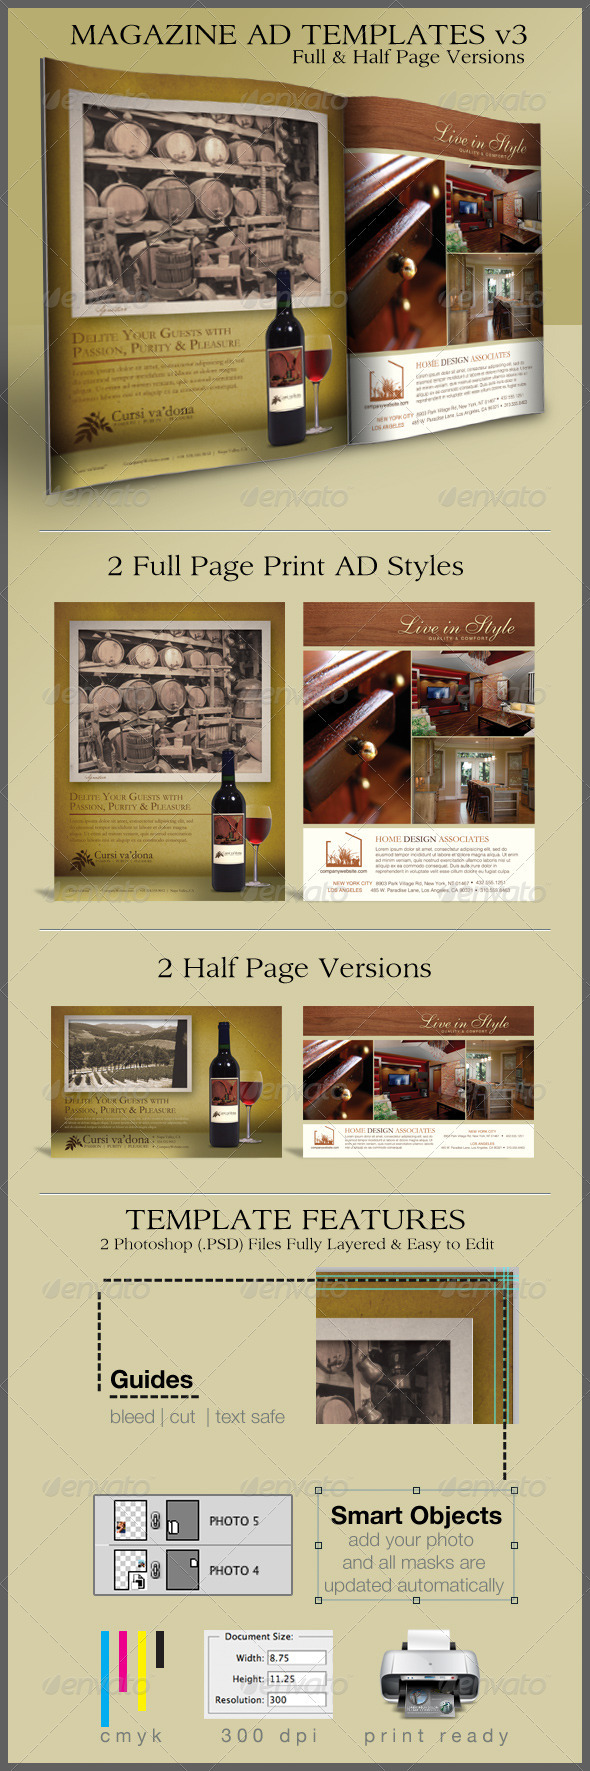 print ad templates and layouts v3 on behance version 3 of the popular print ad templates for full page magazine layouts now half page designs included these 2 photoshop psd templates are